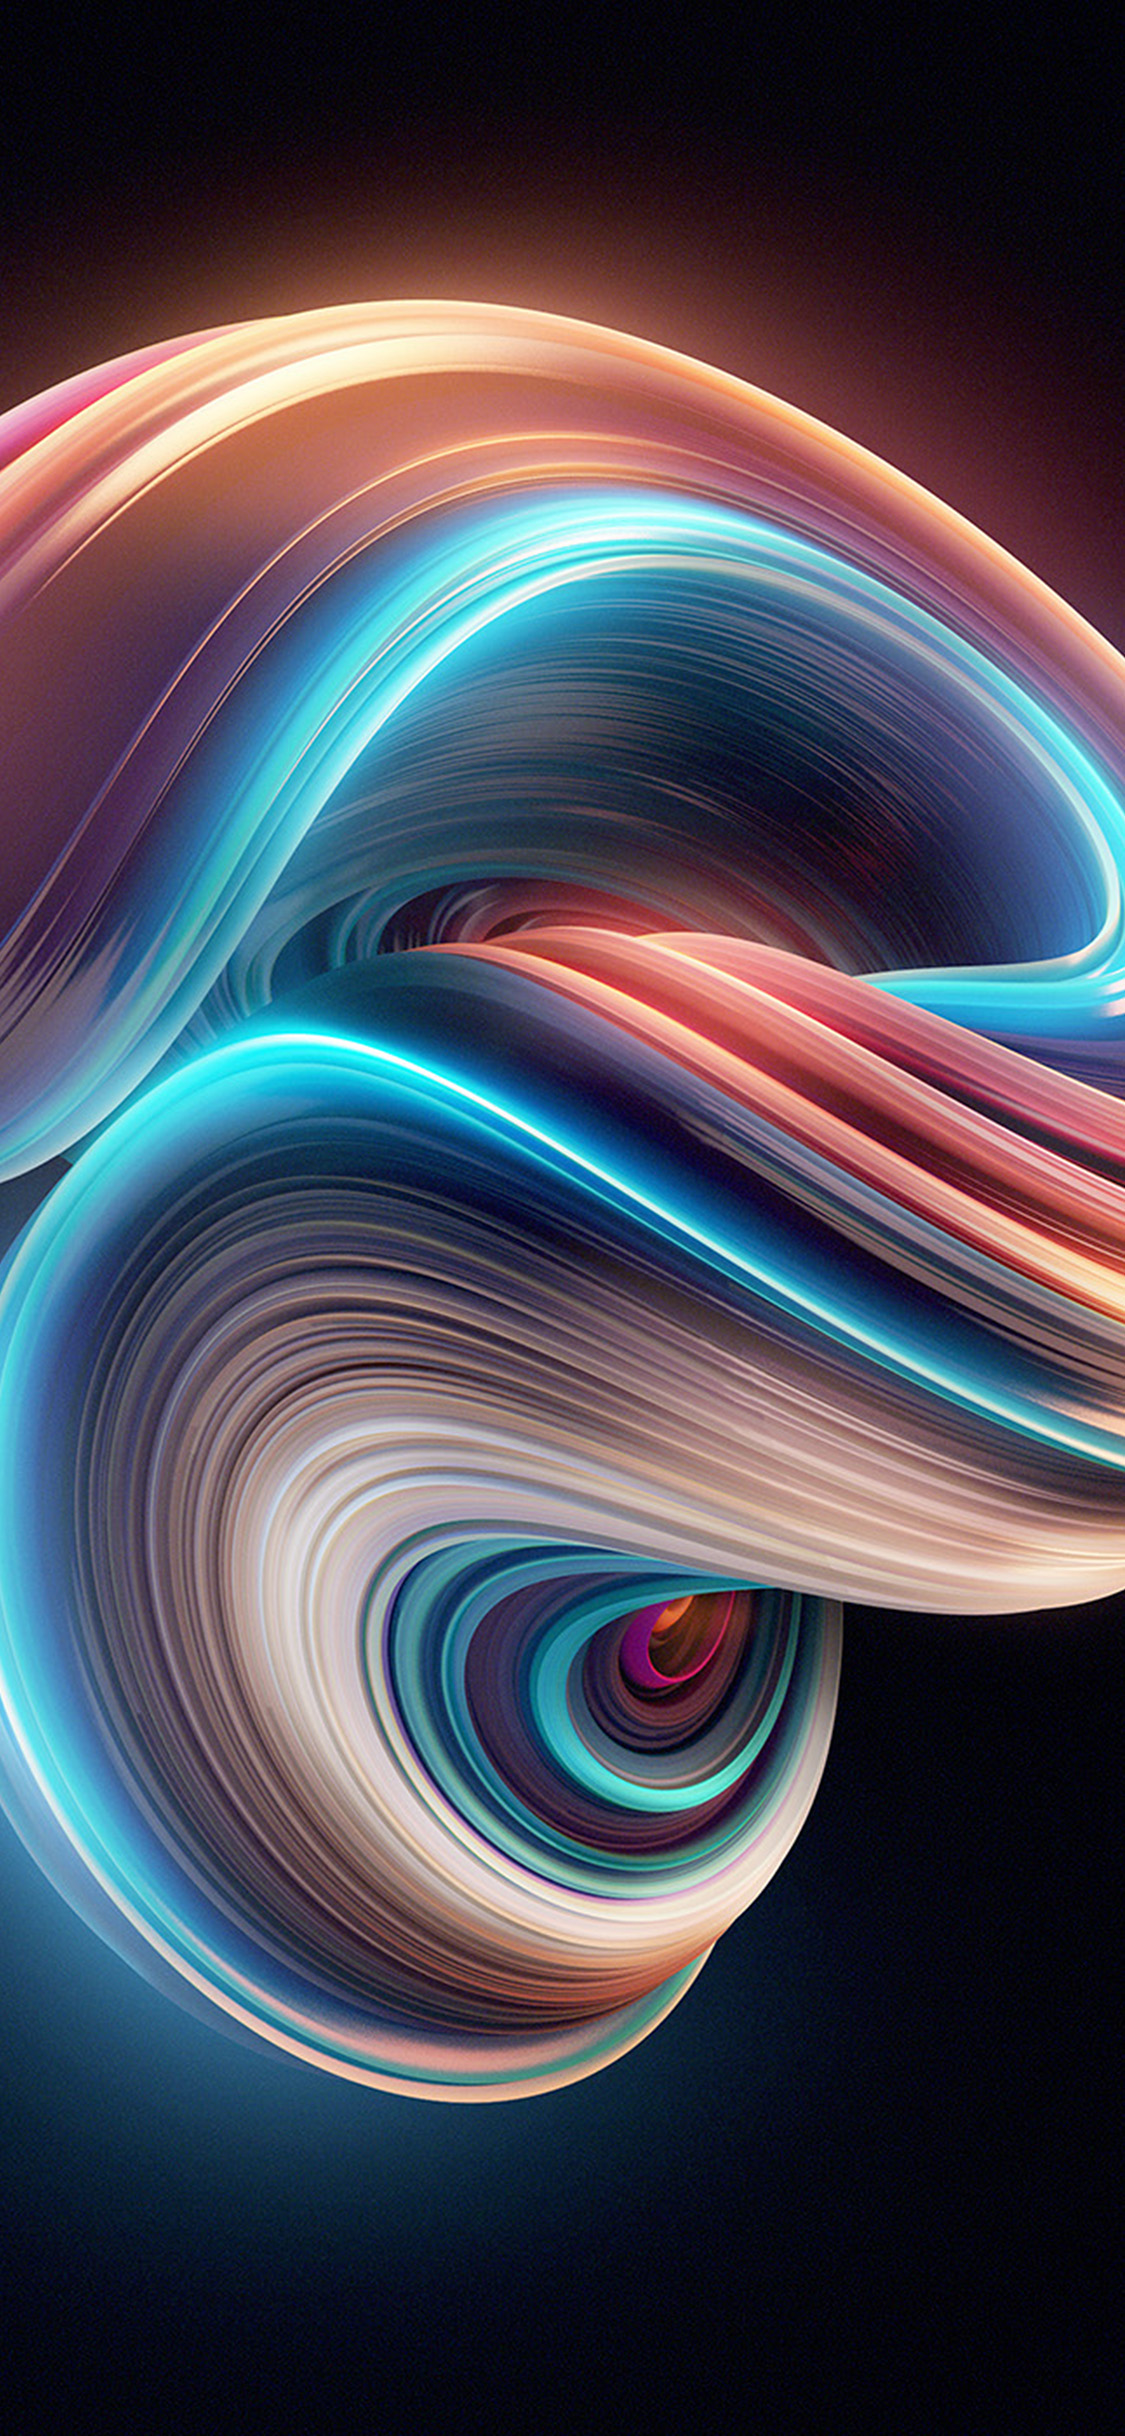 iPhonexpapers.com-Apple-iPhone-wallpaper-wc86-pattern-background-graphic-3d-abstract